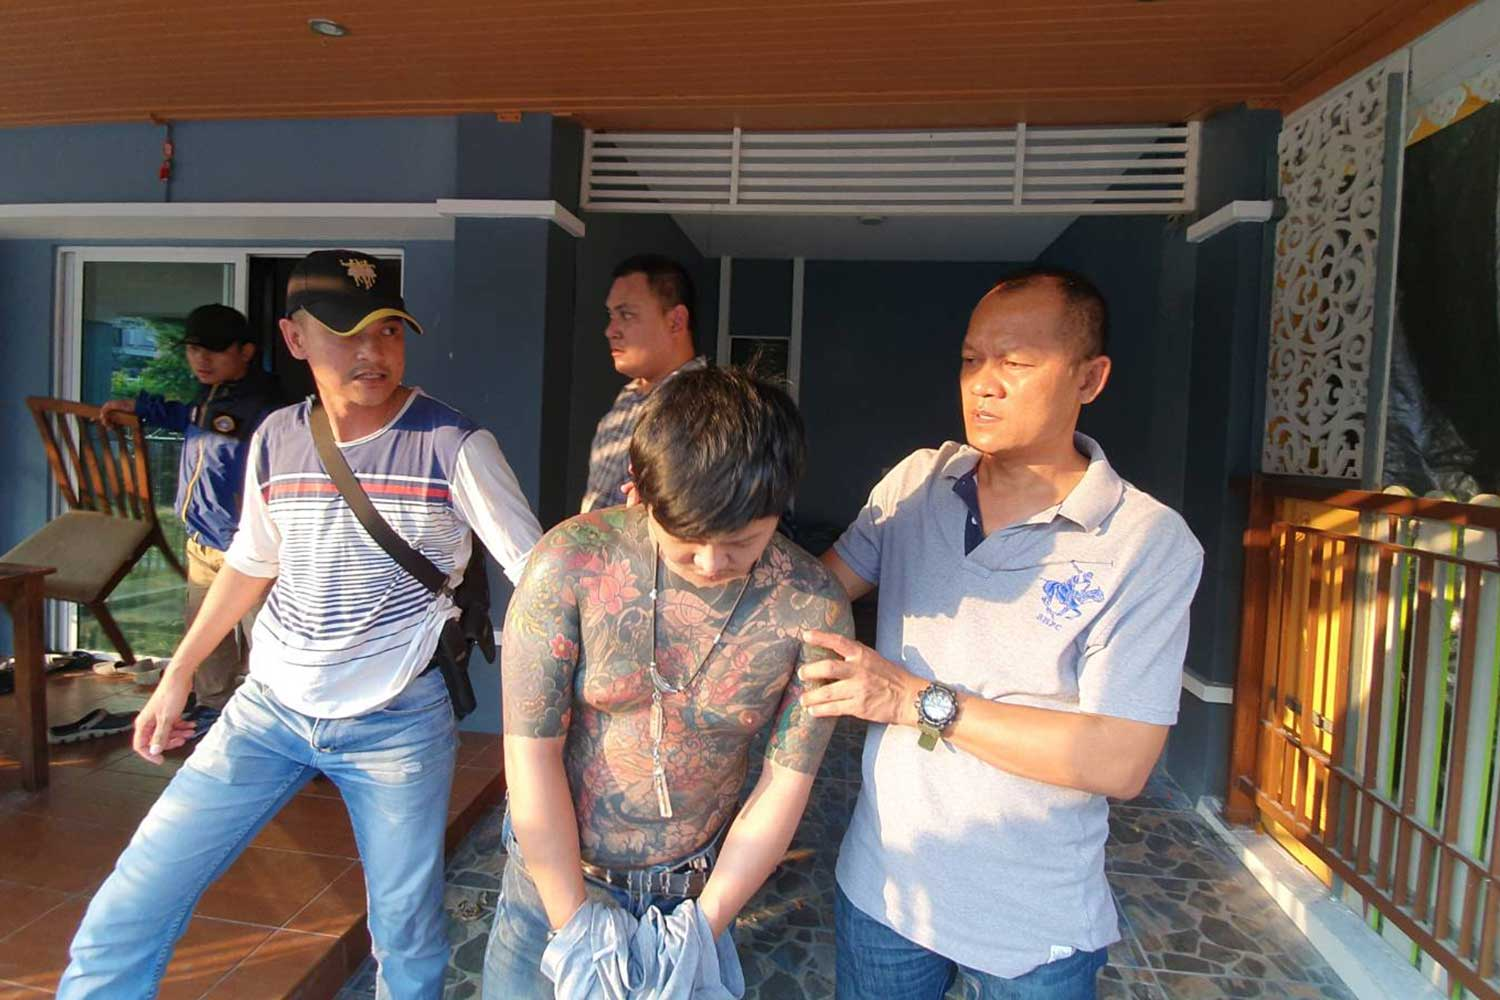 Crime Suppression Division police arrest Narenrit Baitoey, 23, wanted for the robbery of a 7-Eleven store in Nakhon Nayok, at a house in Muang district of Pathum Thani on Thursday. Another accomplice surrendered to police and the third suspect remained at large.(Photo supplied)